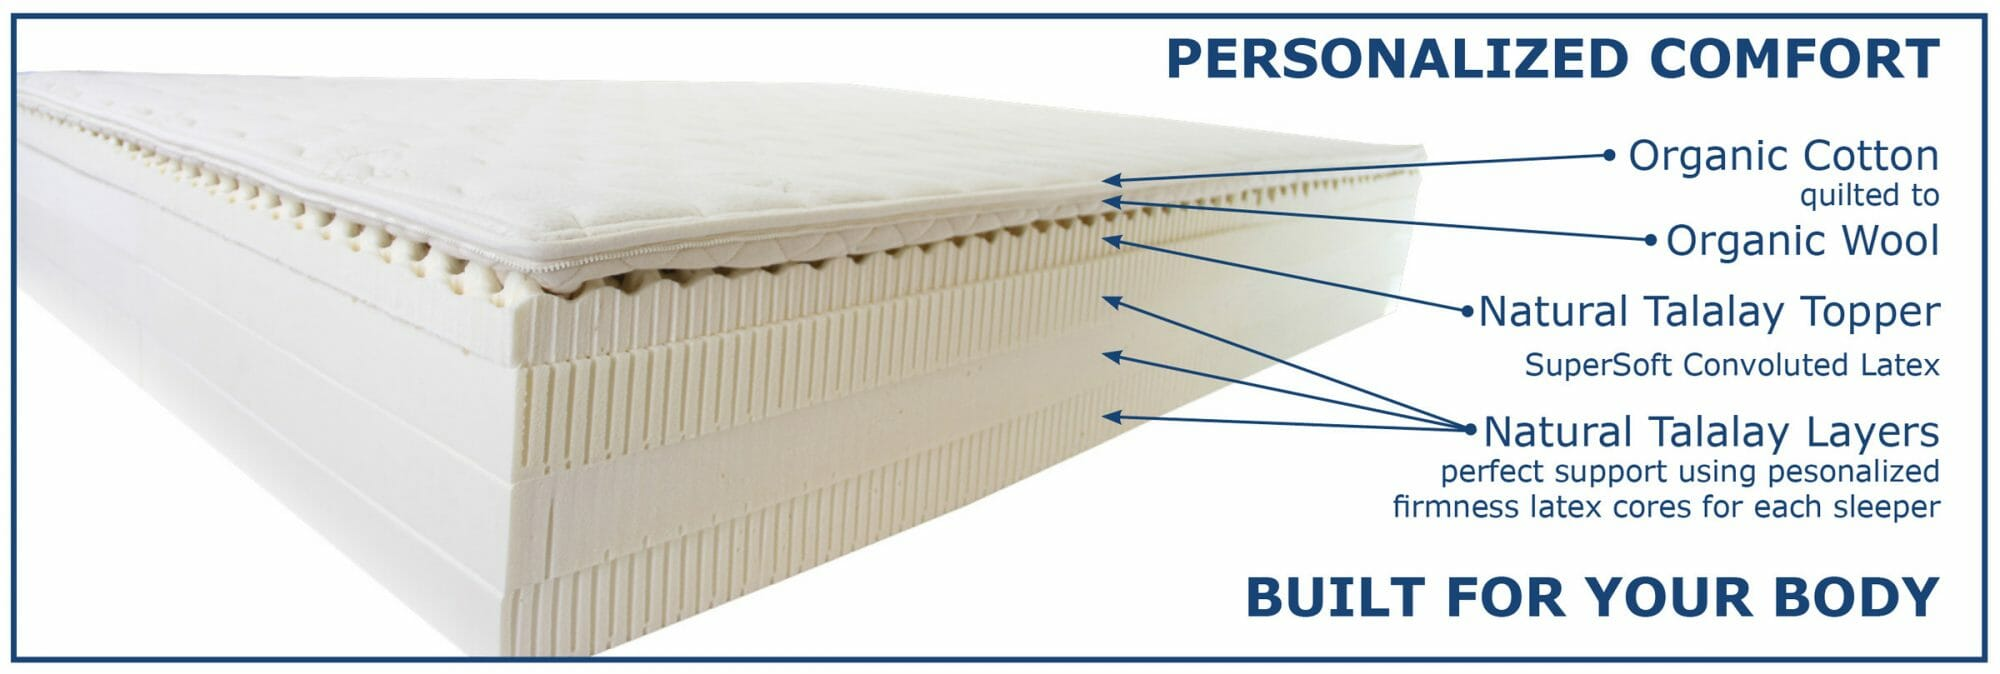 FloBeds Deluxe Latex Mattress with organic cotton, organic wool and natural latex